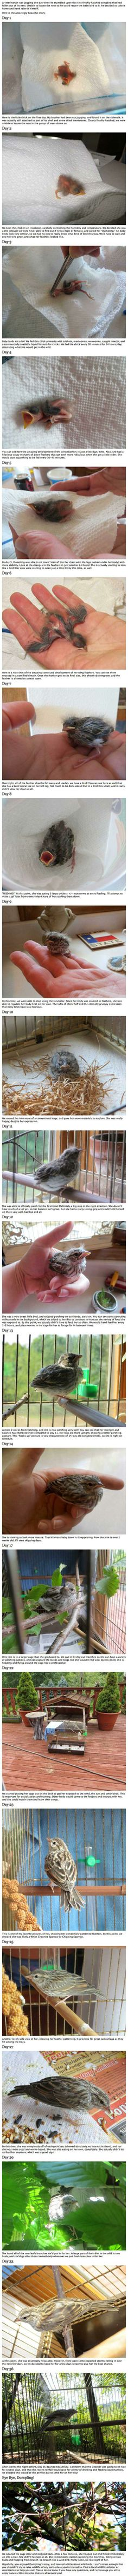 A man going for a jog found this baby bird. This is what happened next…